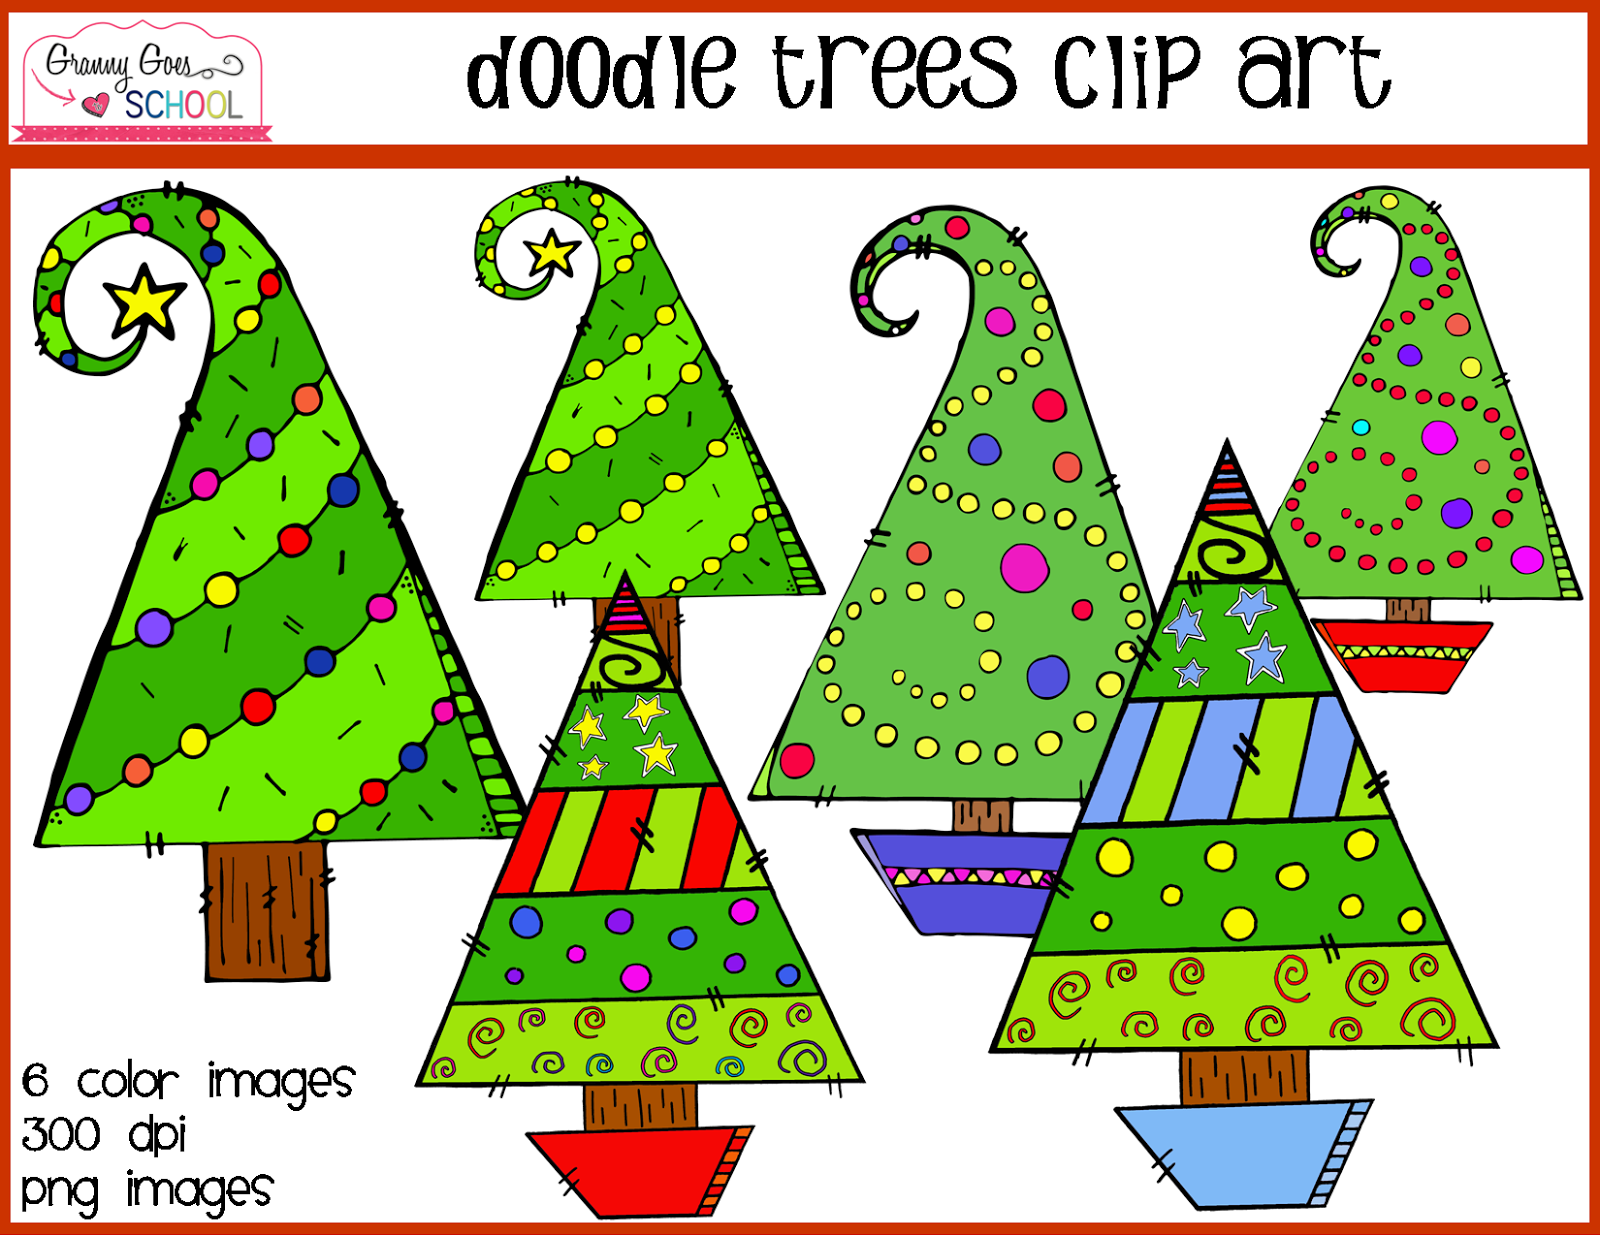 http://www.teacherspayteachers.com/Product/Doodle-Trees-Freebie-1574795